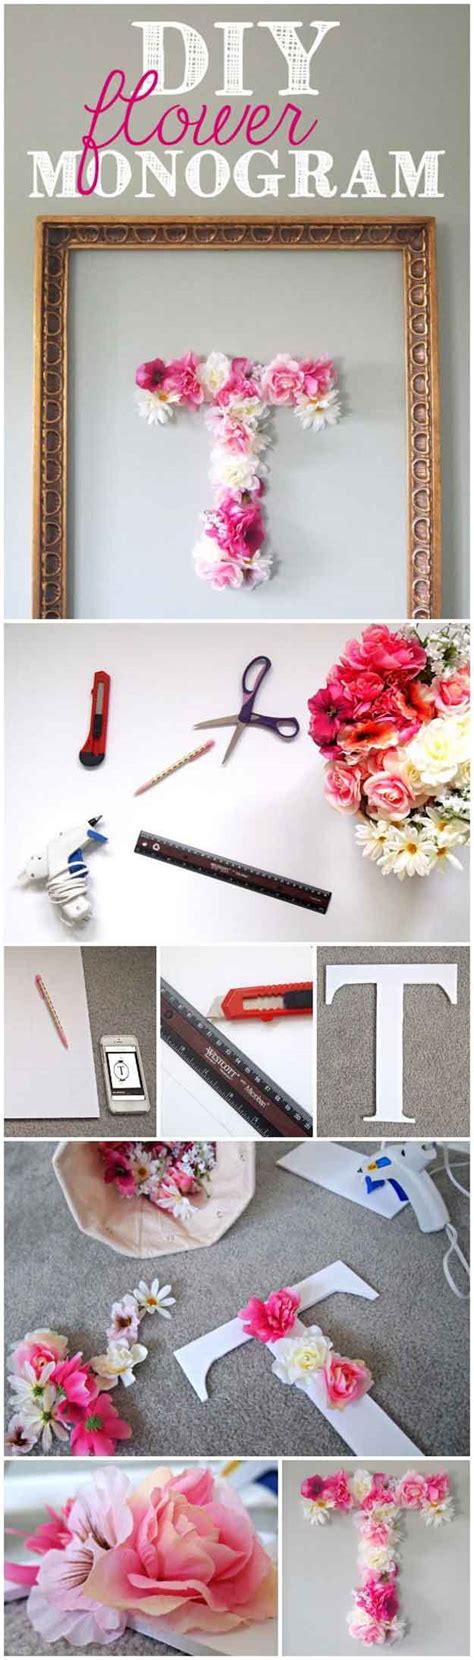 diy projects for your bedroom diy projects for bedroom diy ready